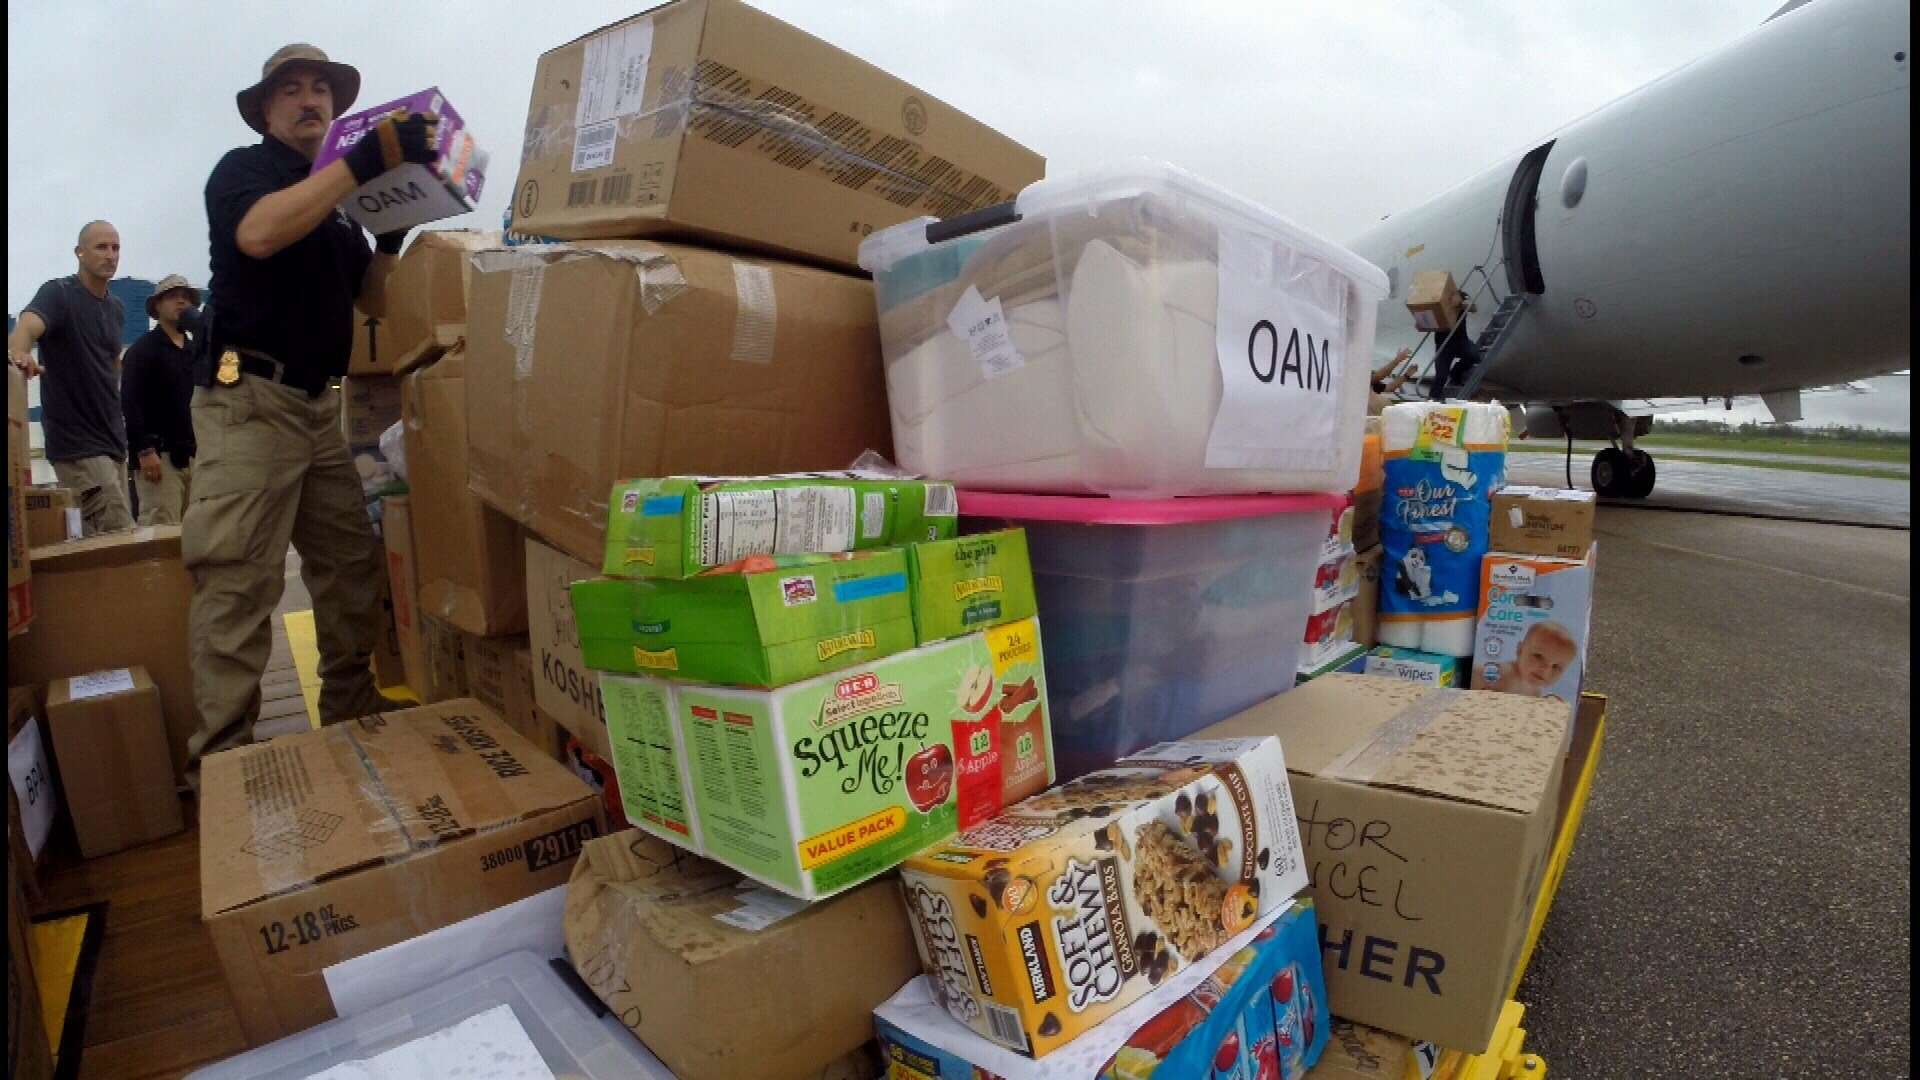 The supplies will be distributed to storm victims in Northwest Puerto Rico and also agents on the ground.